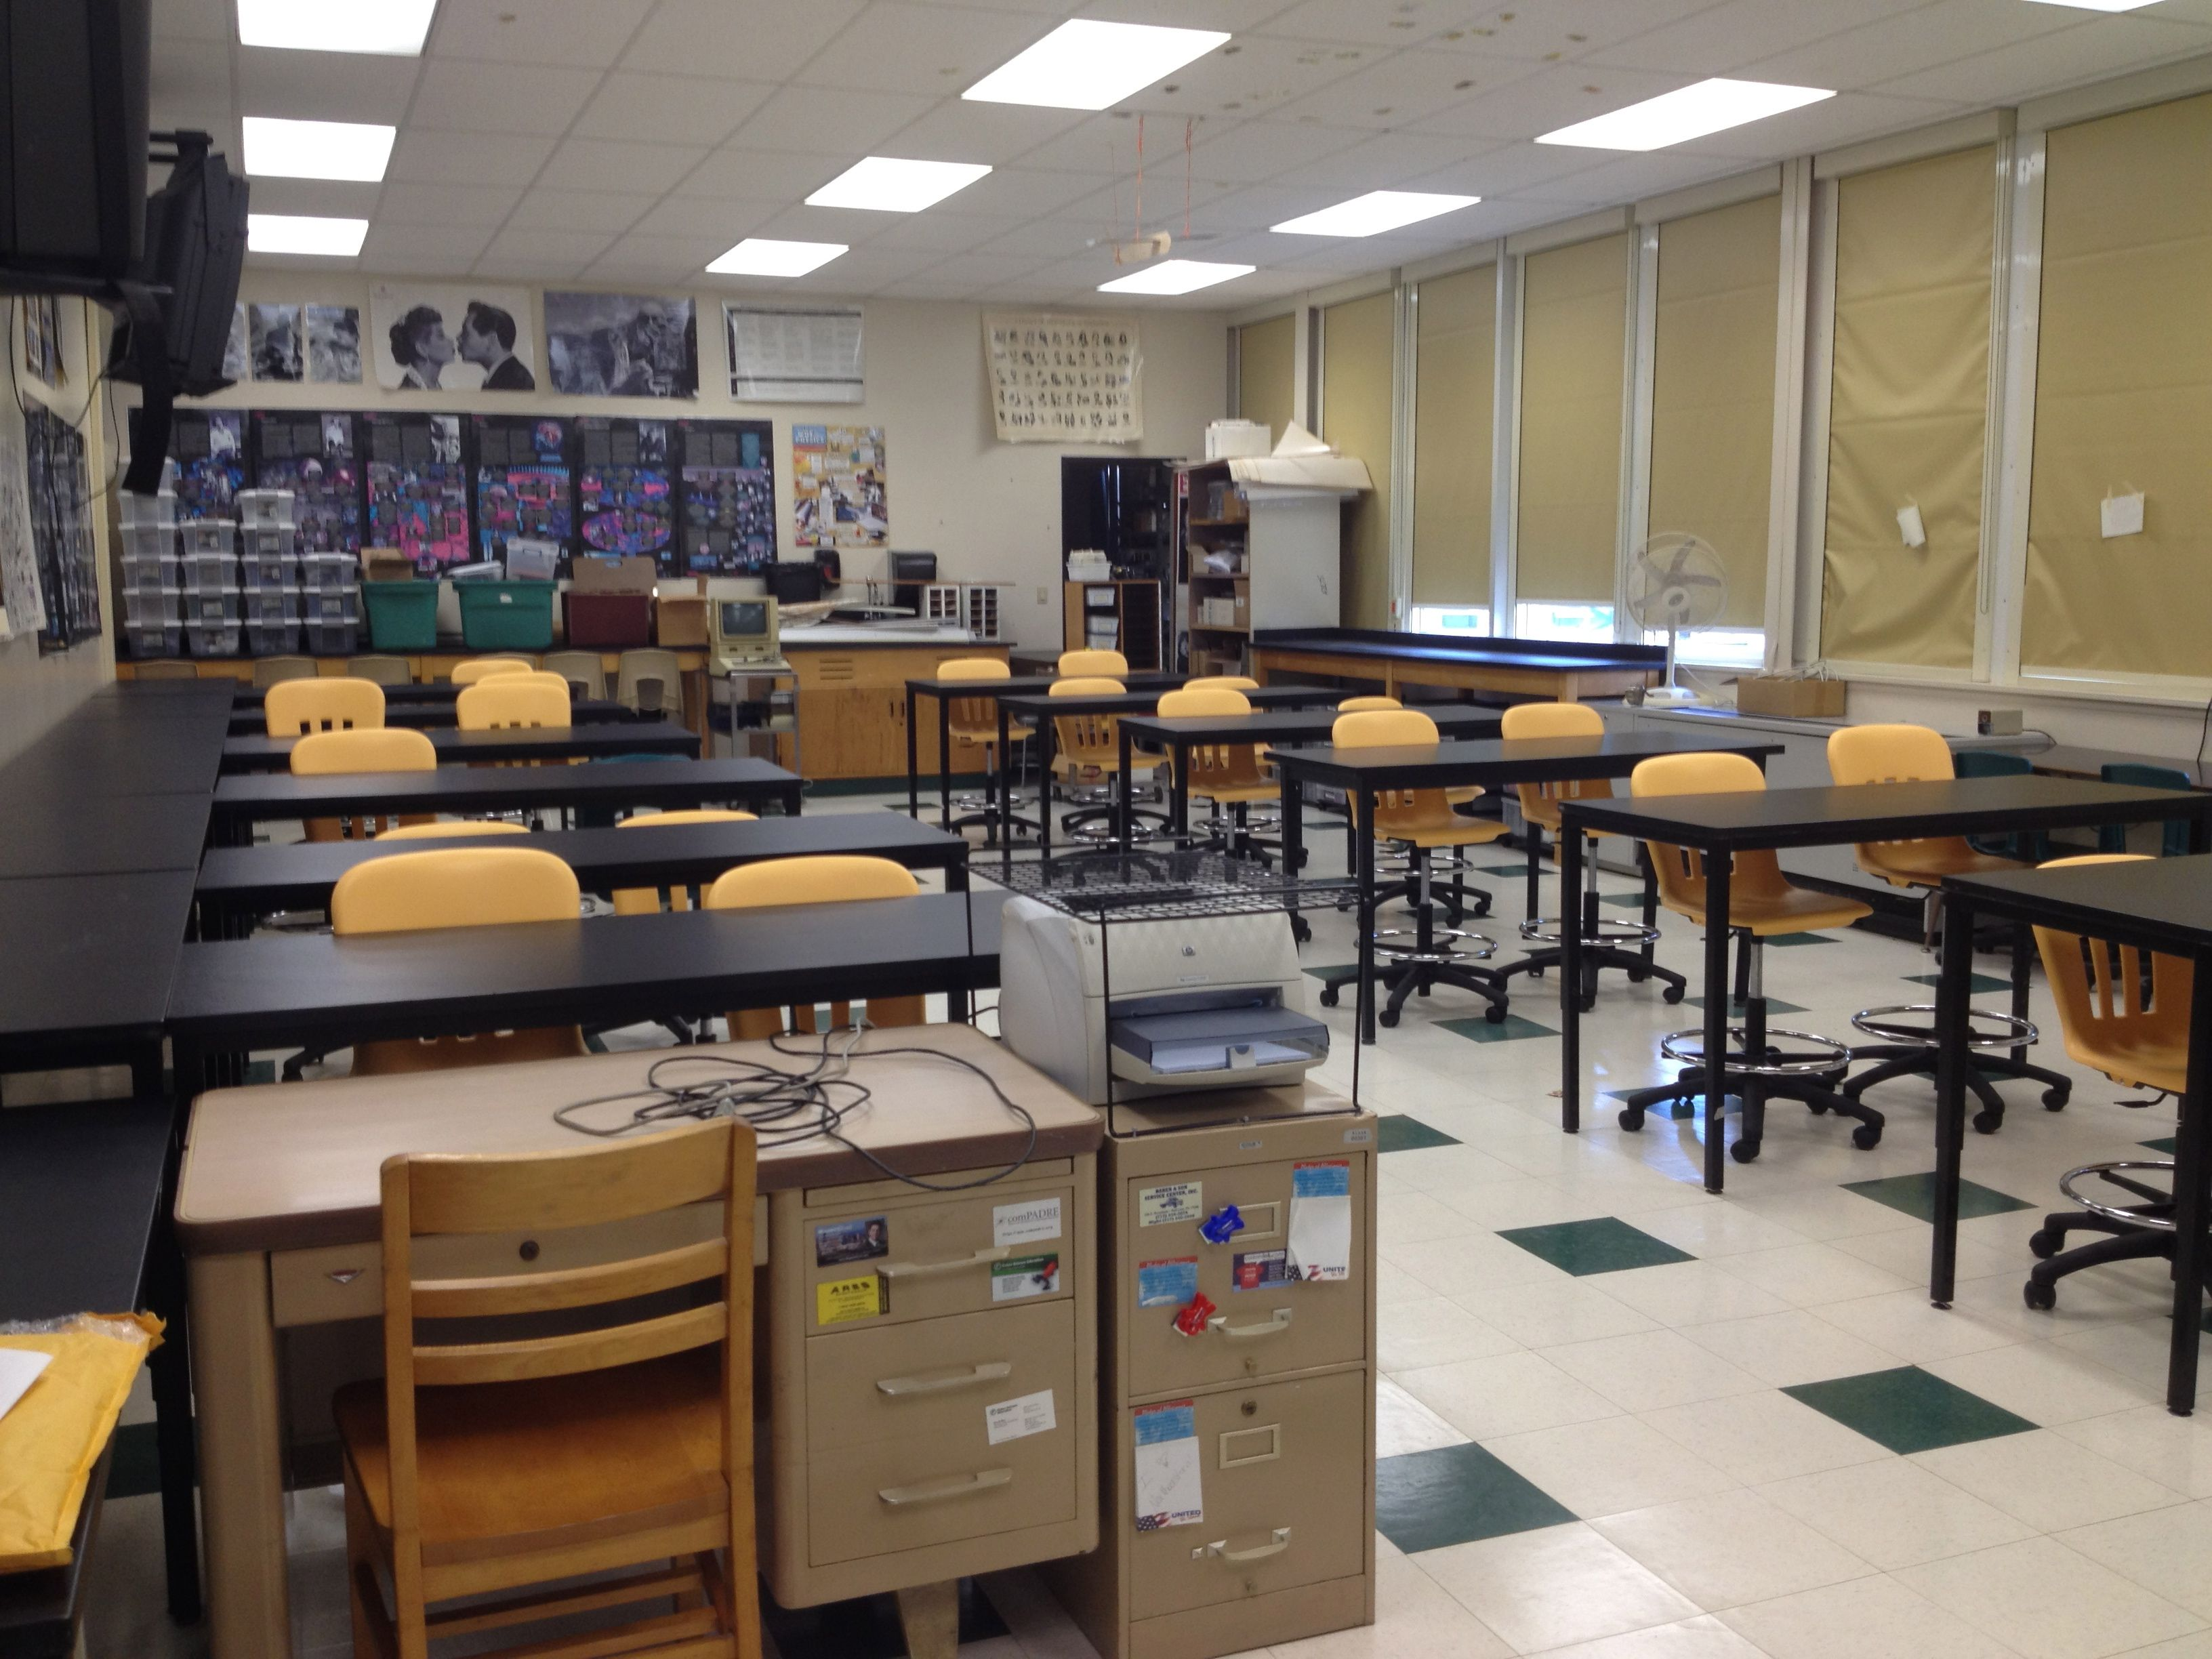 High School Biology Classroom Decorations ~ High school biology classroom images